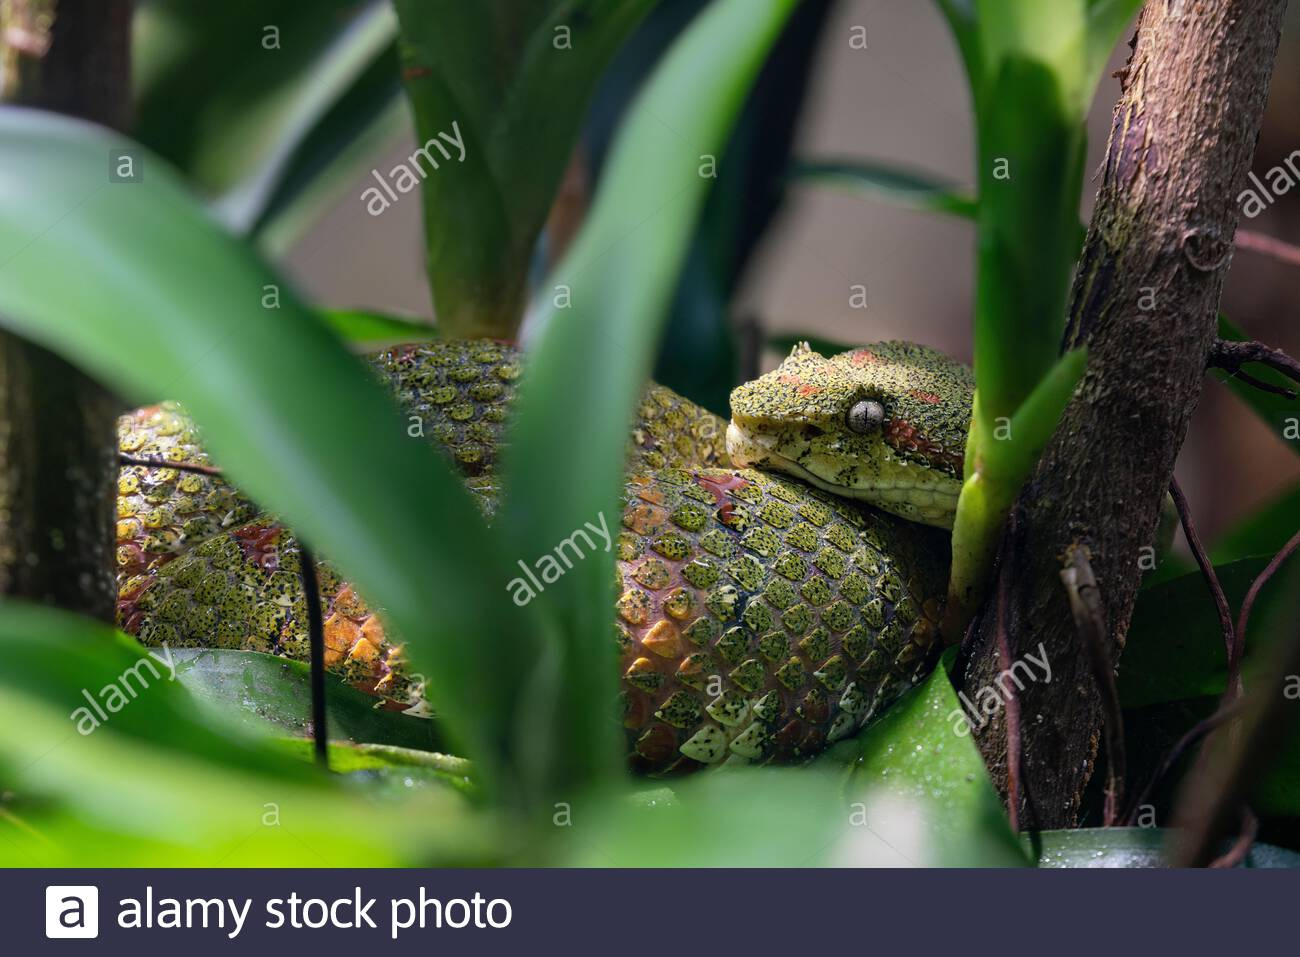 Bothriechis schlegelii known as the eyelash viper, a highly venomous pit viper native to Central and South America Stock Photo